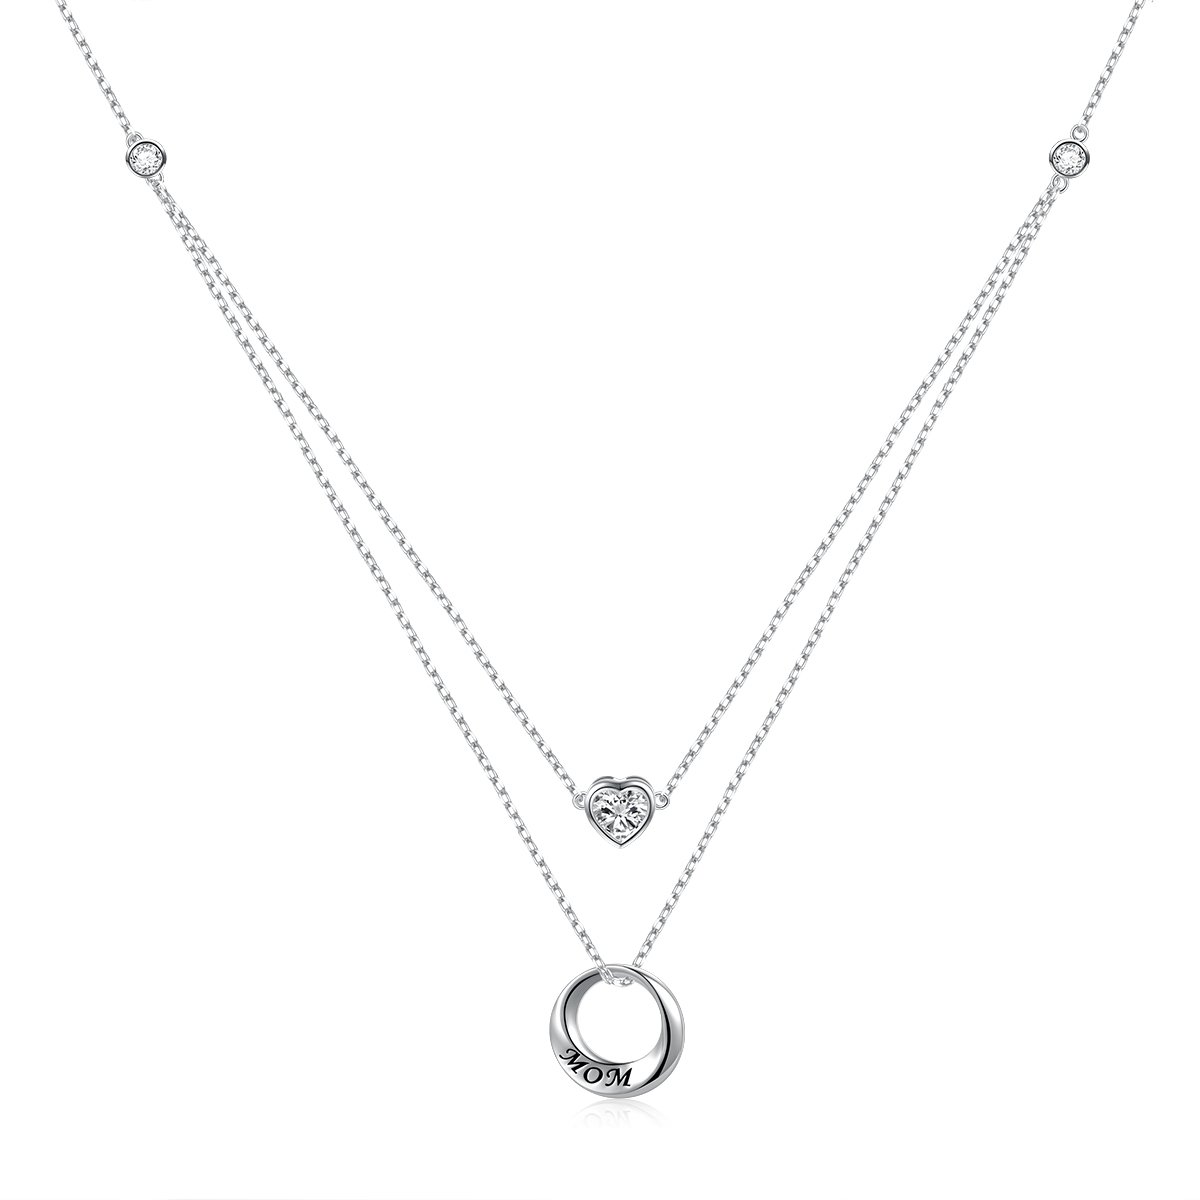 ATHENAA S925 Sterling Silver I love you Mom Double Chain,Love Heart Necklace